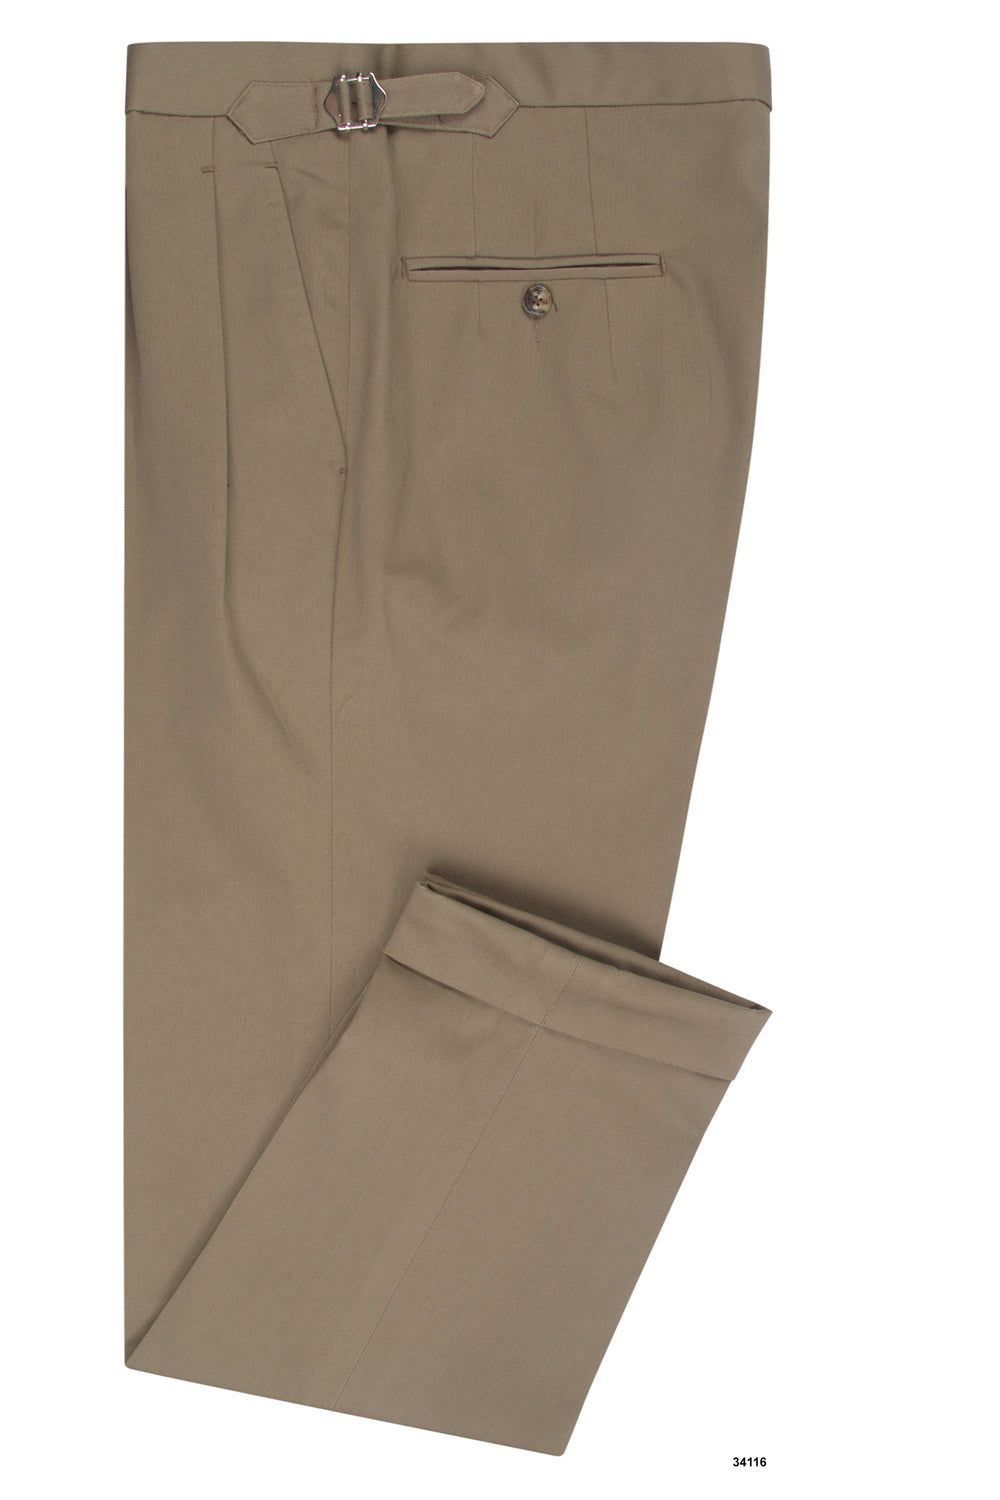 Fossil Brown Soft Twill Chino